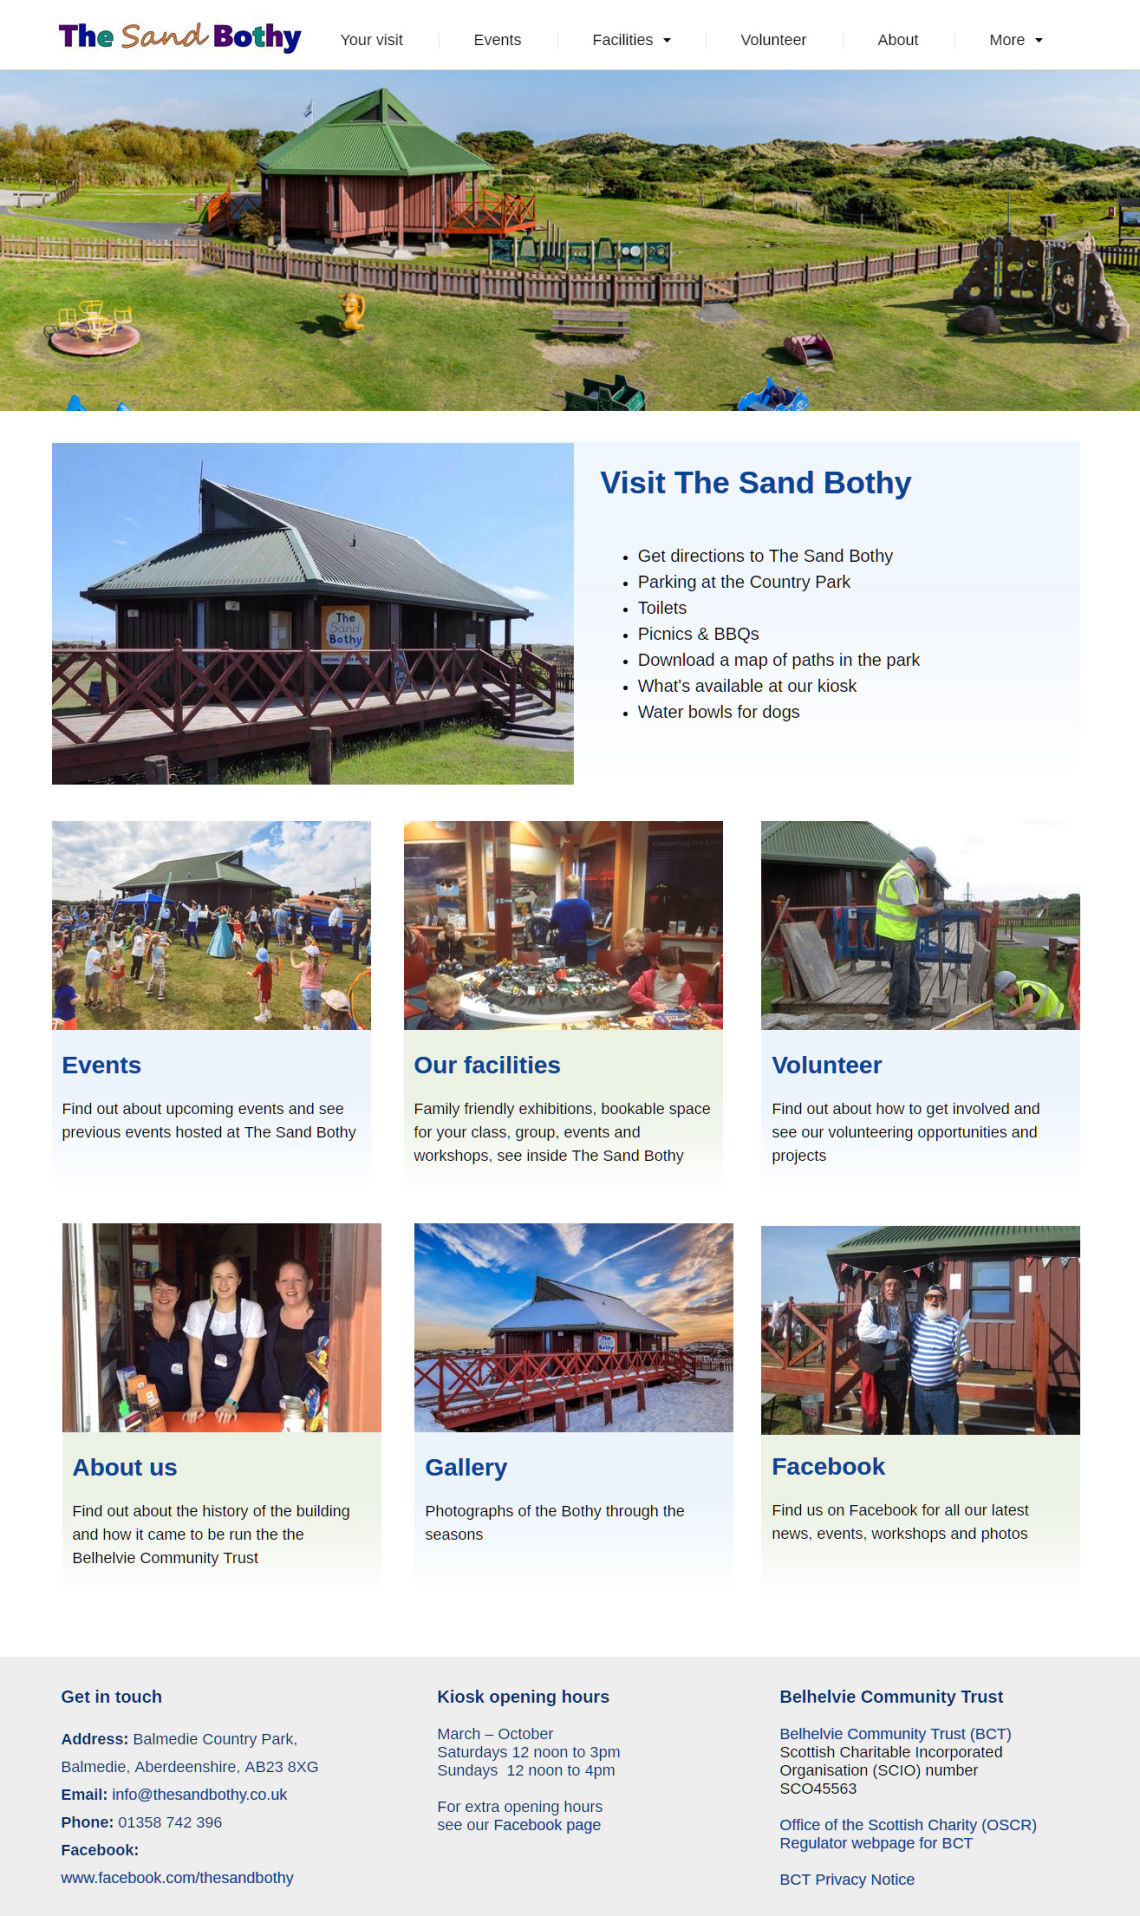 Homepage of The Sand Bothy website created by Doric Design